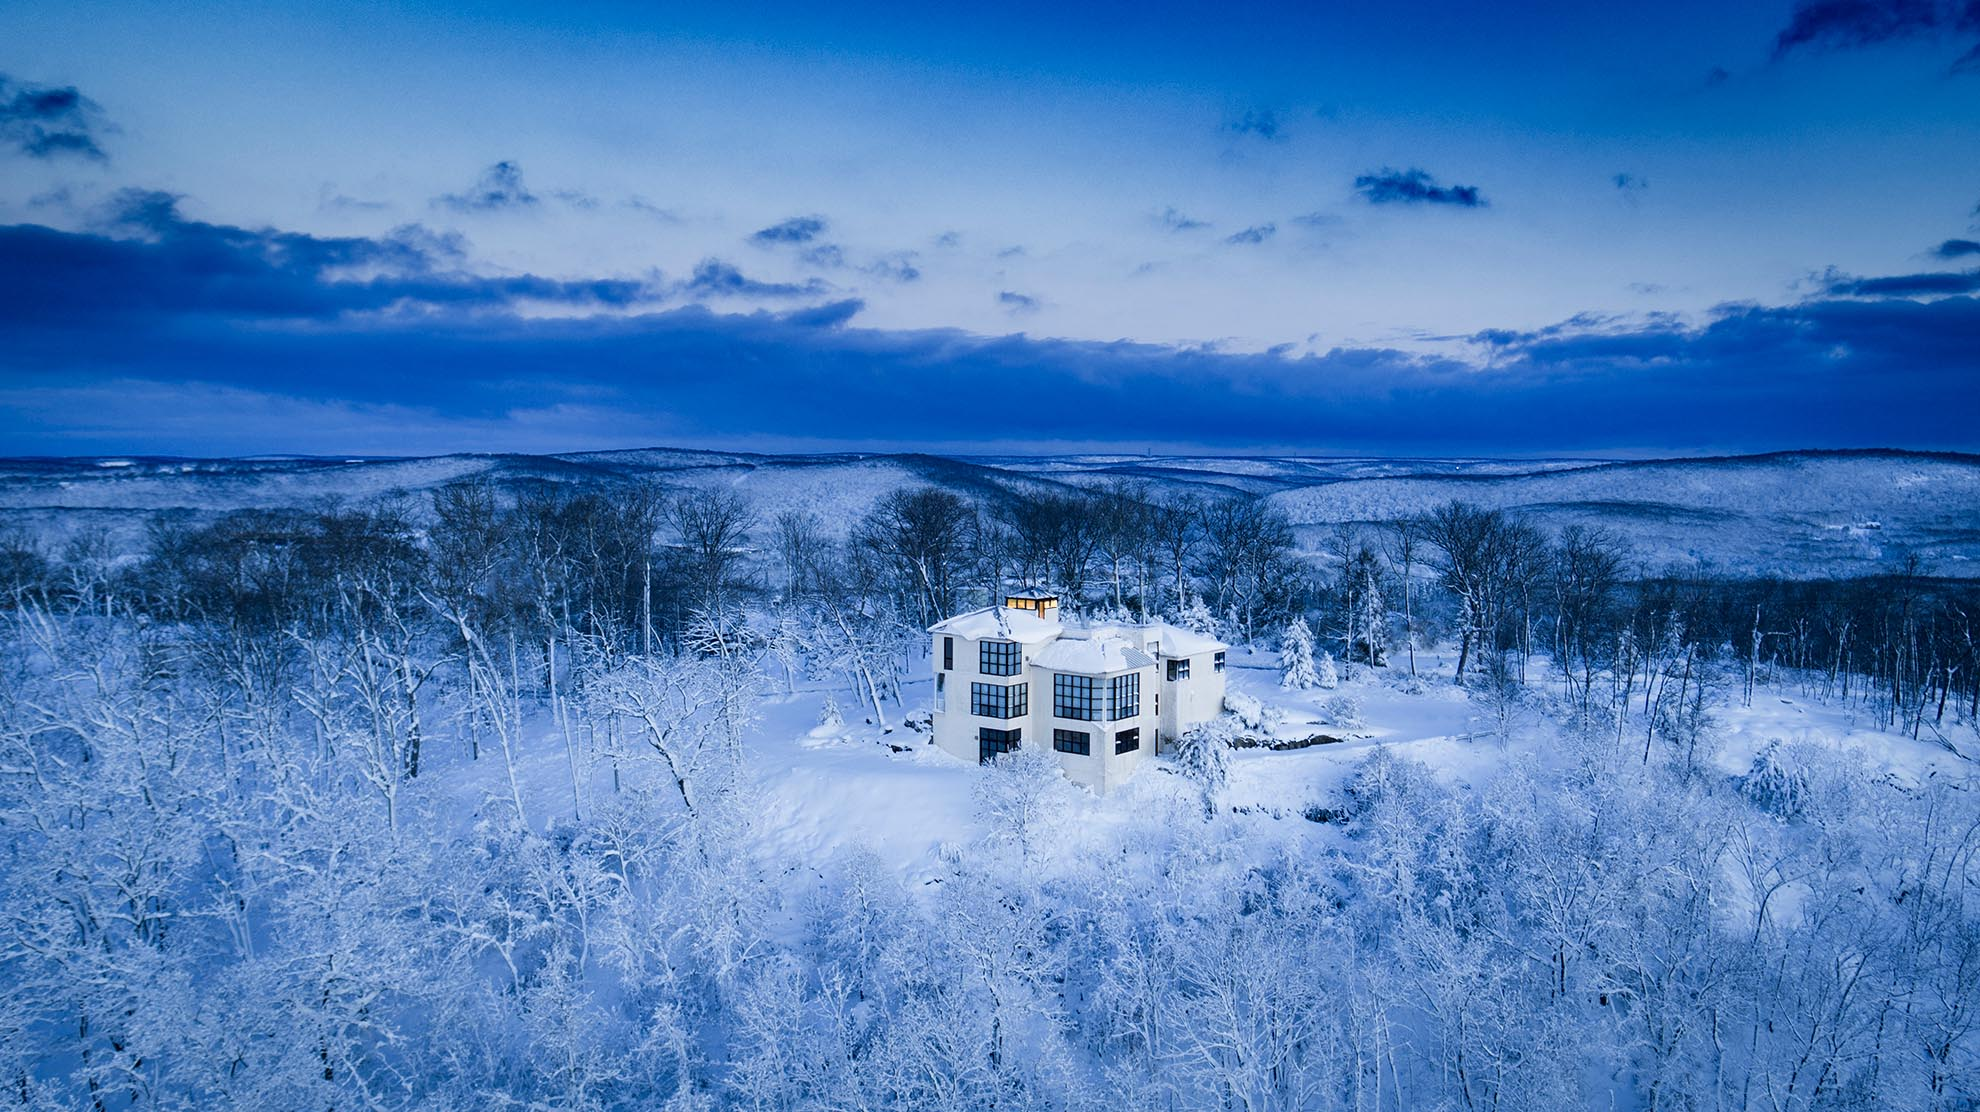 Drone Photograph of white Modern Home on Mountain Top after snow storm in NJ